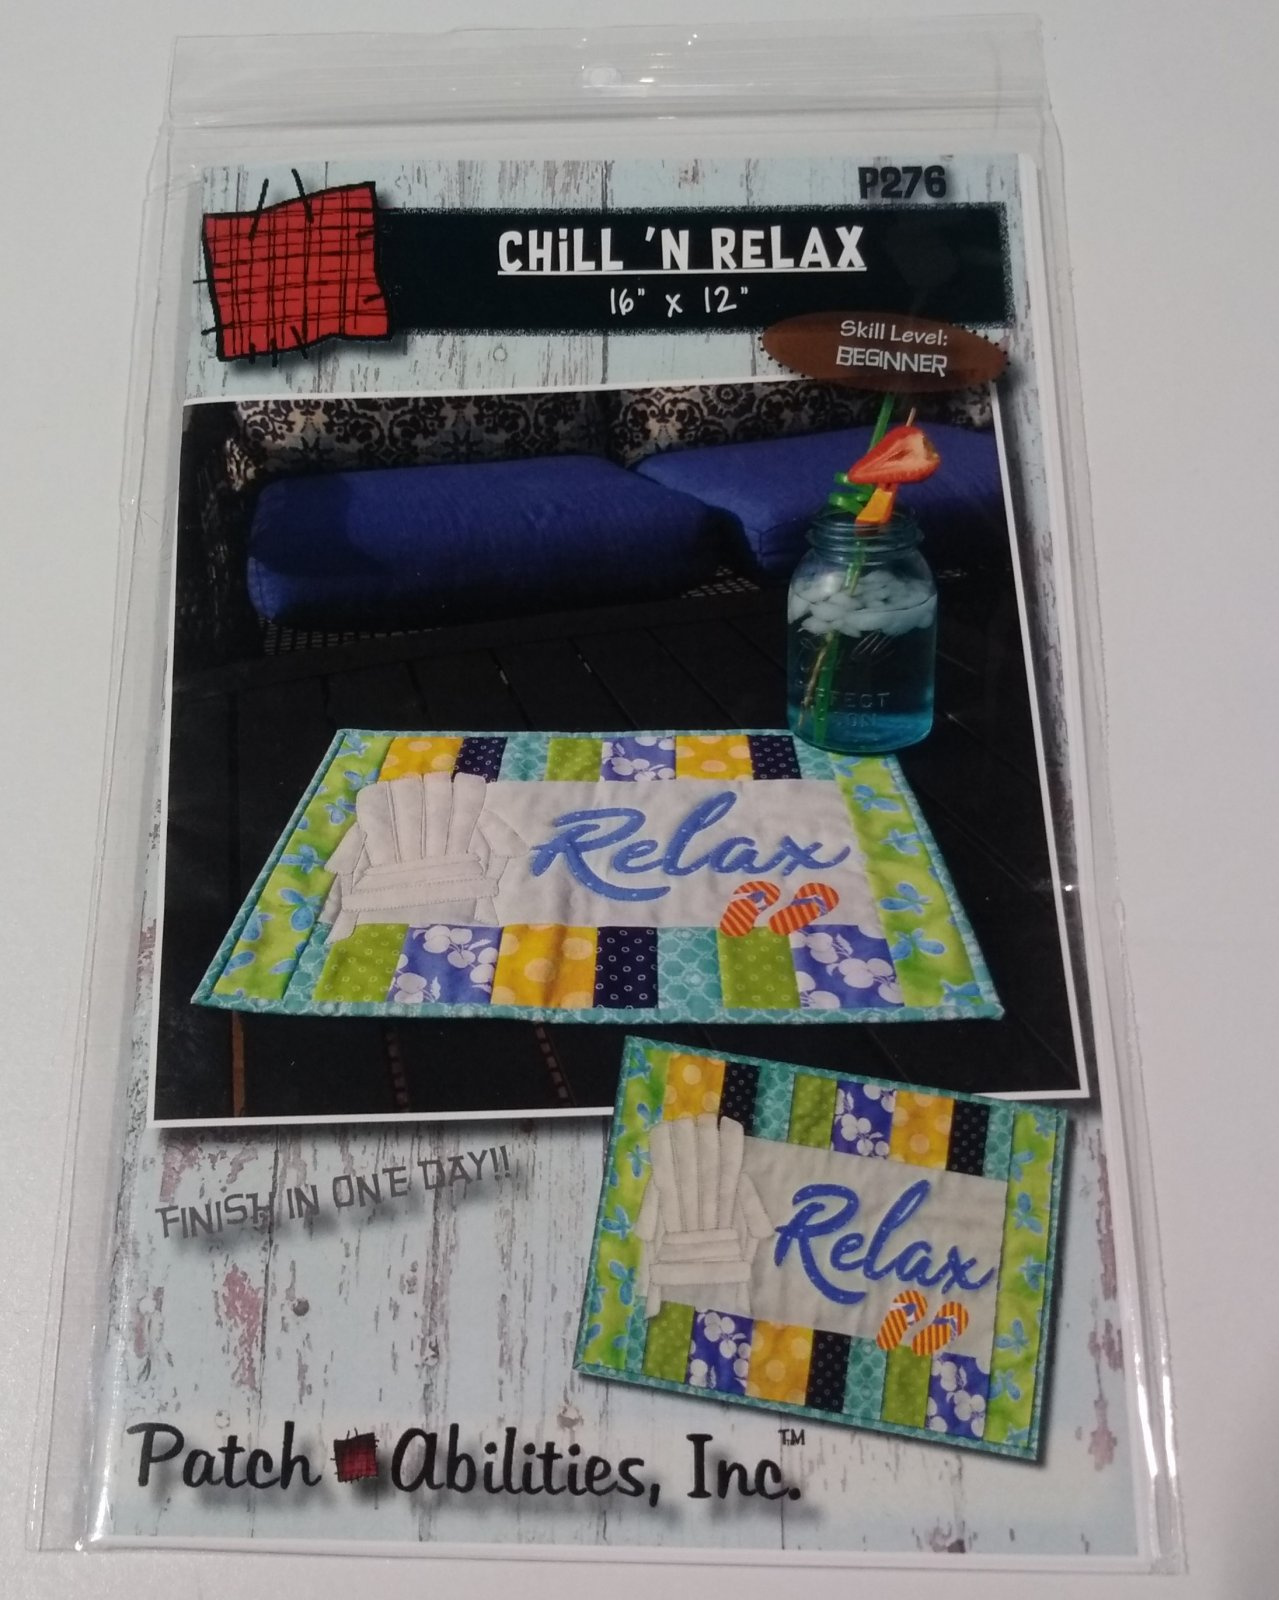 CHILL 'N RELAX